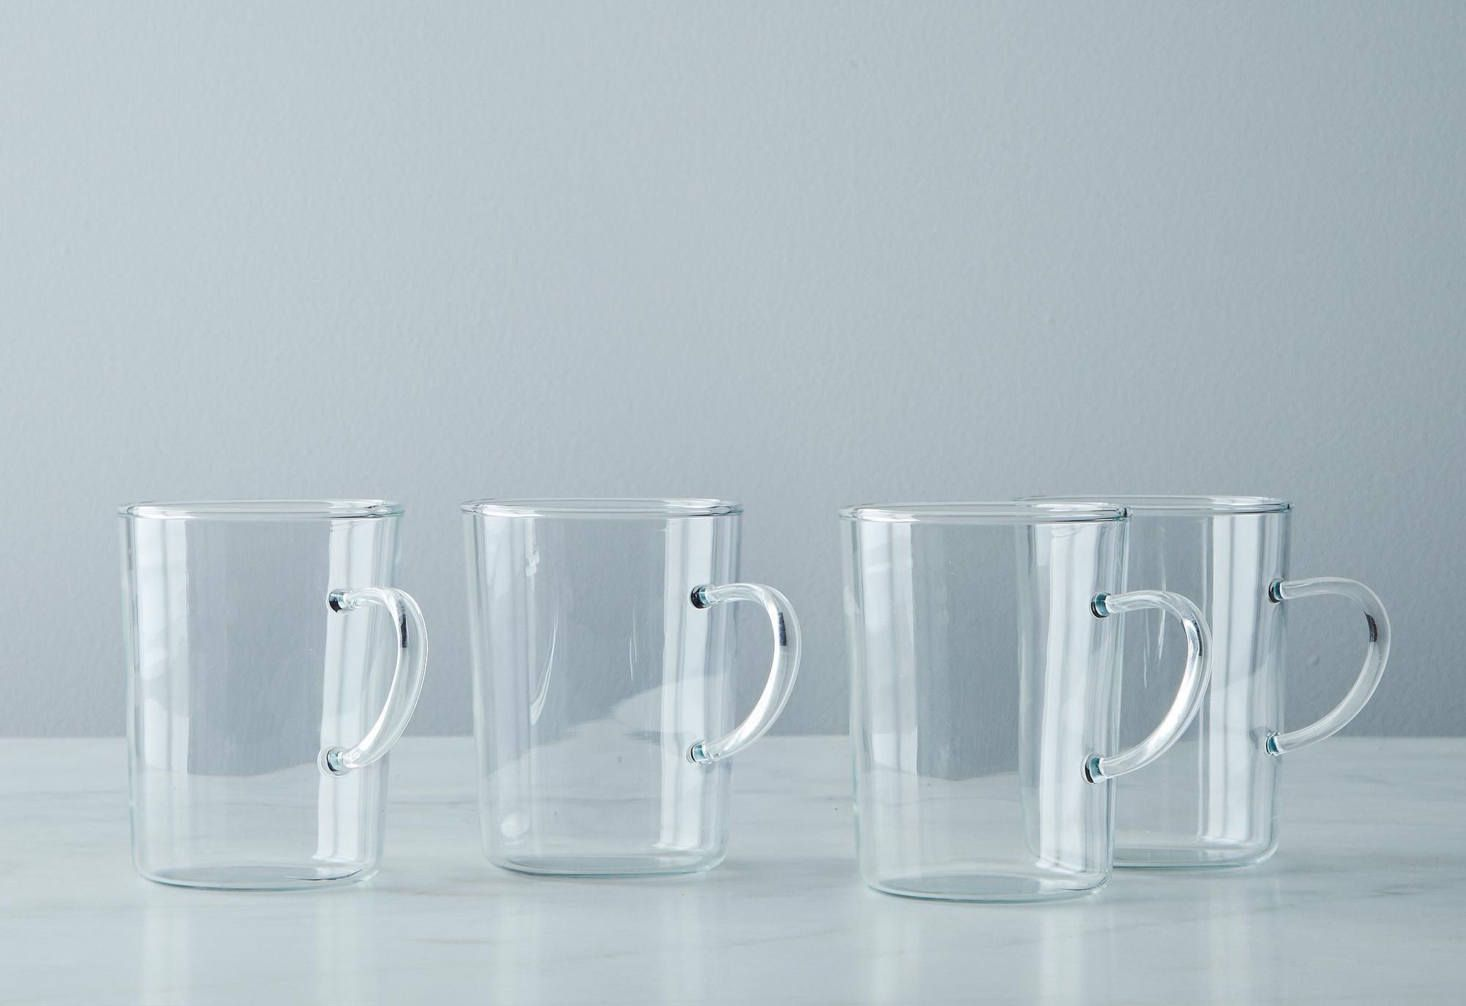 10 Easy Pieces Modern Glass Teacups Remodelista Glass Tea Cups Glass Tea Modern Glass